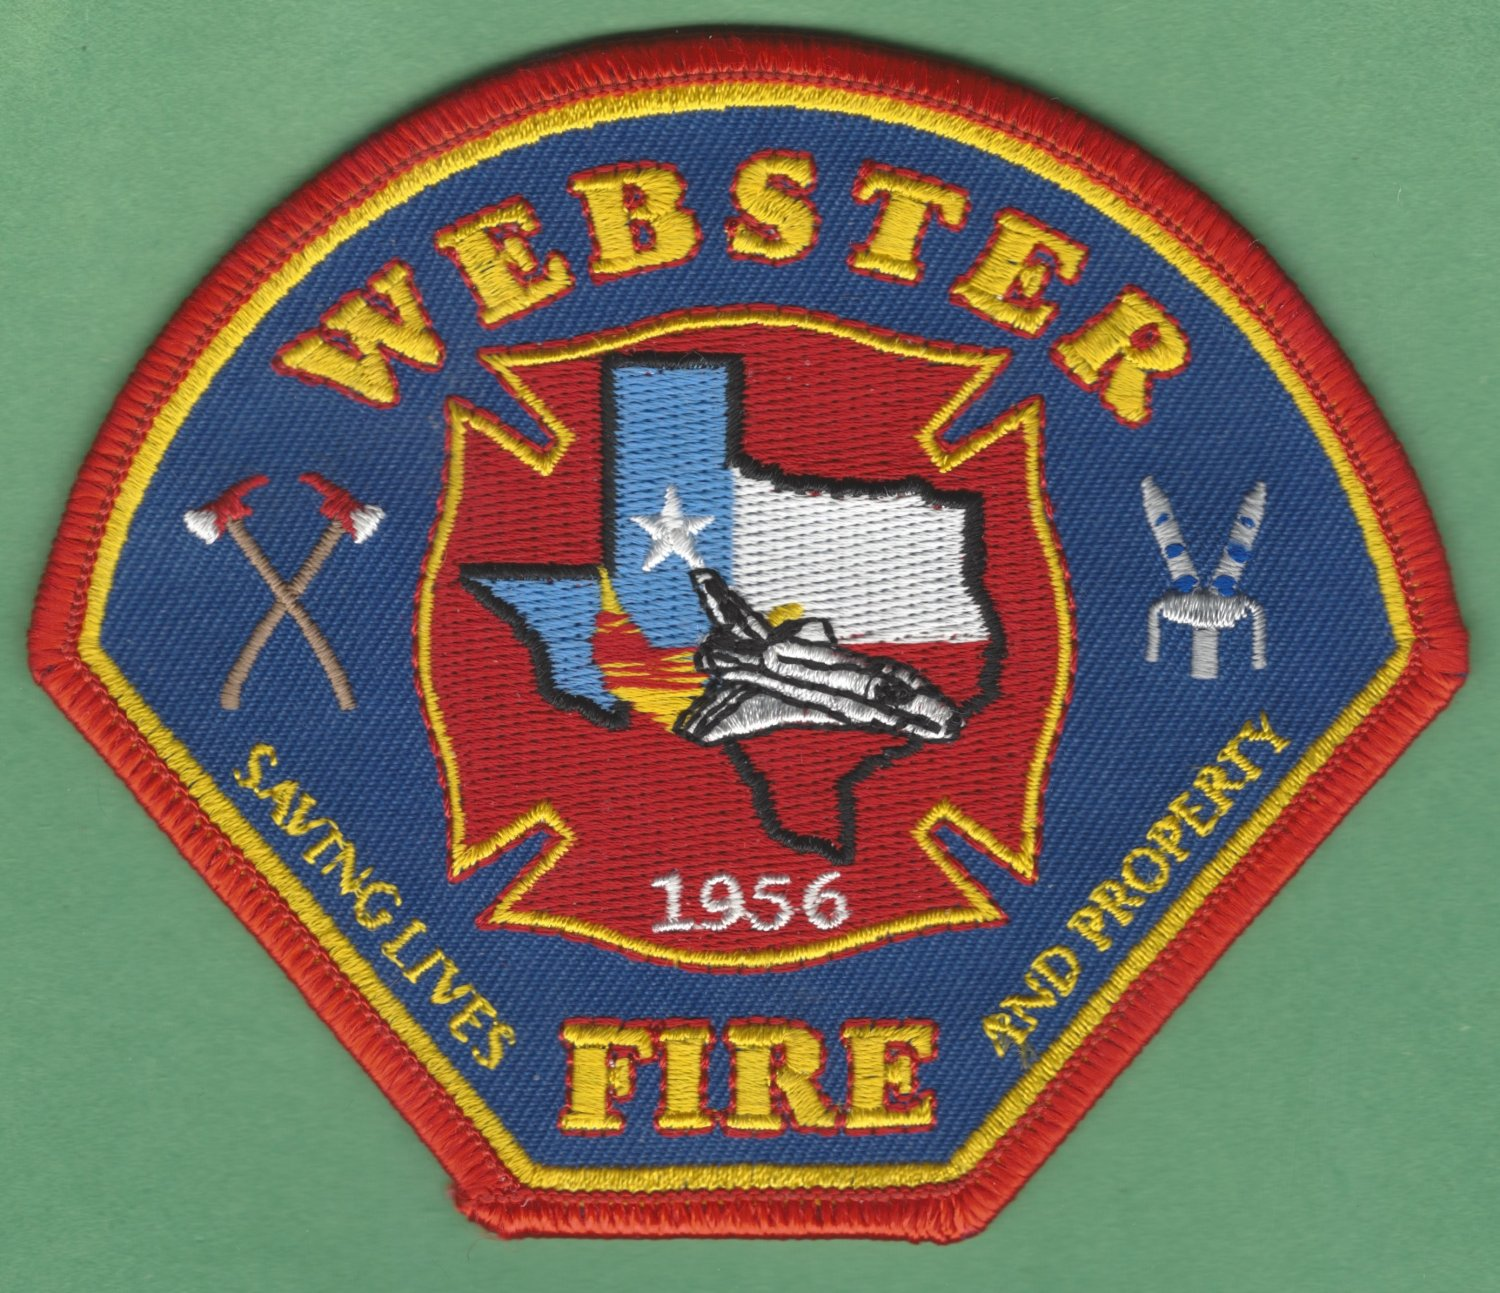 WEBSTER TEXAS FIRE RESCUE PATCH